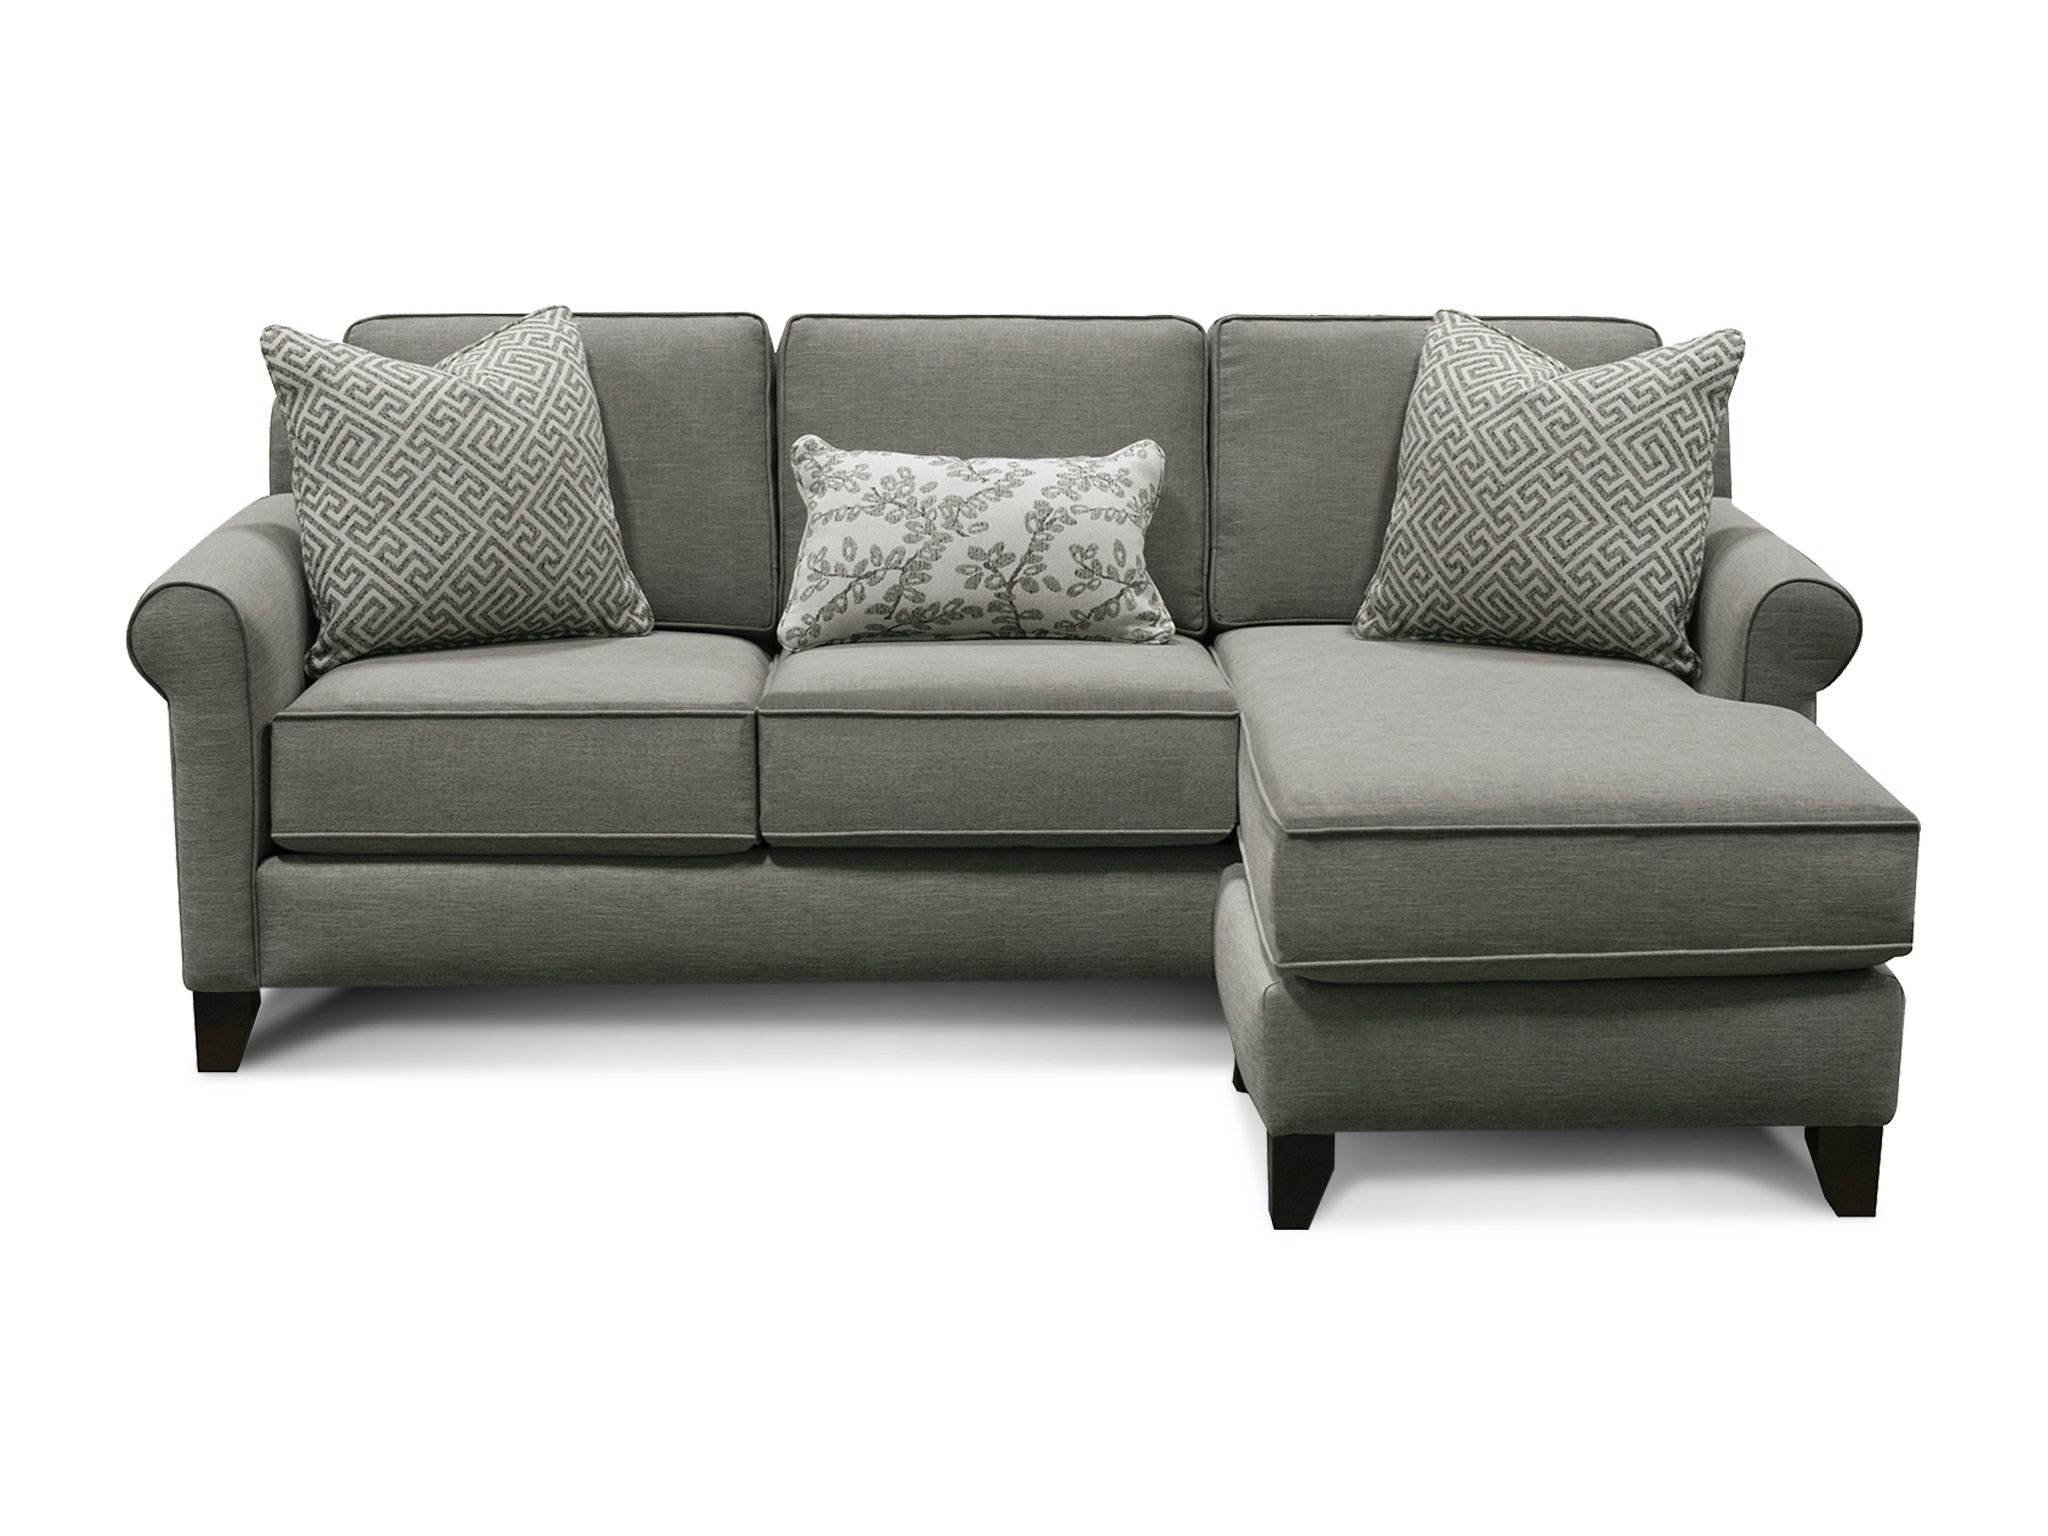 England Living Room Spencer Sofa With Chaise 7m00 56 Simply